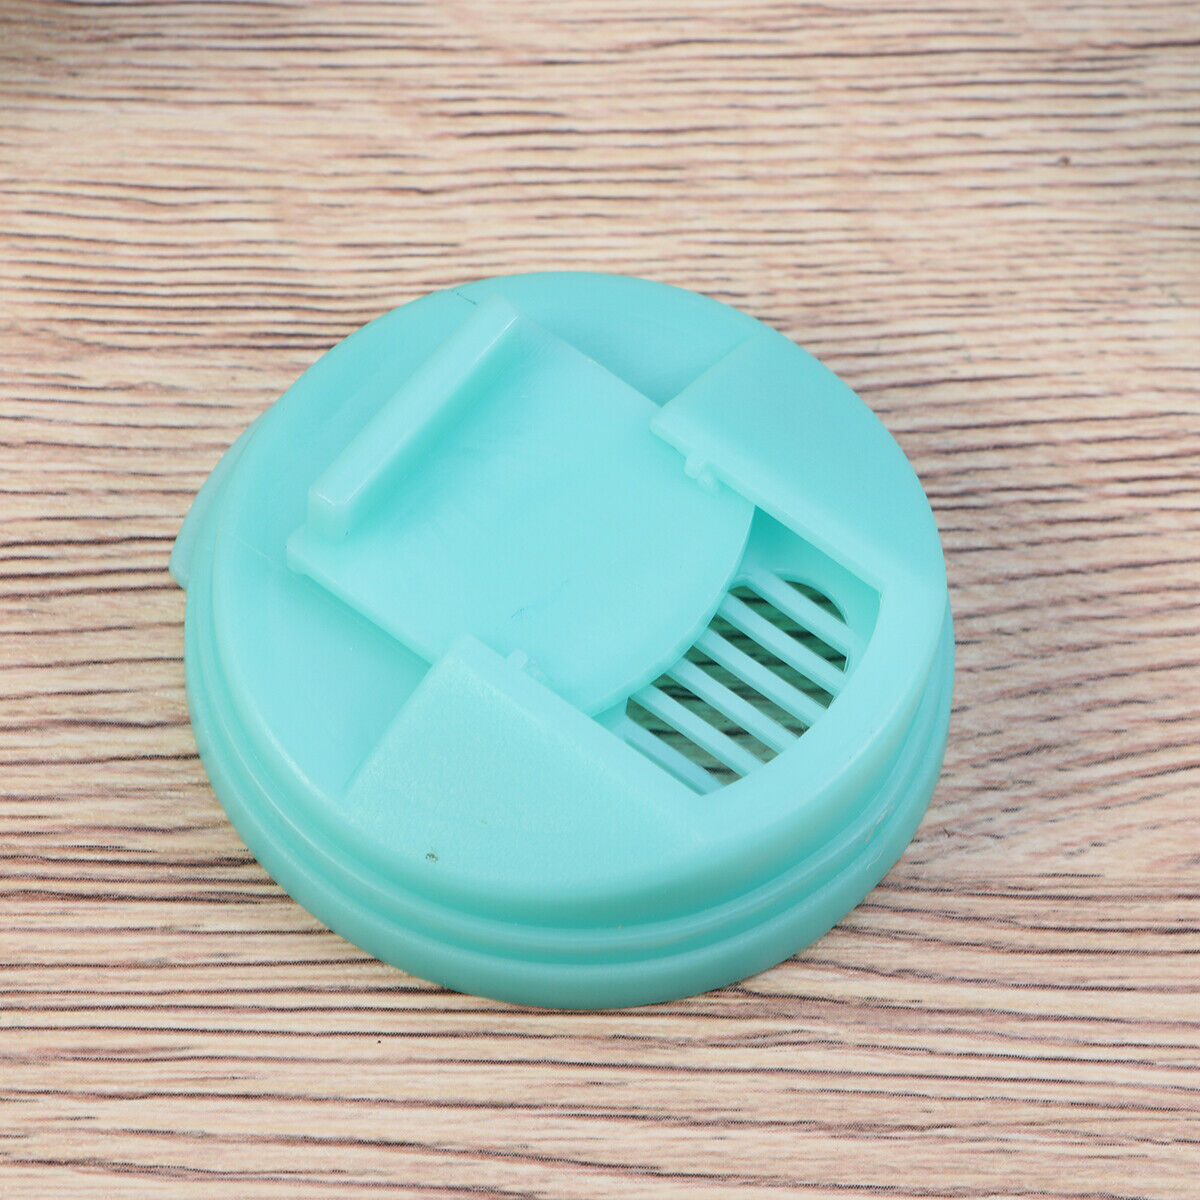 Reusable Silicone Can Lids (Set of 4)